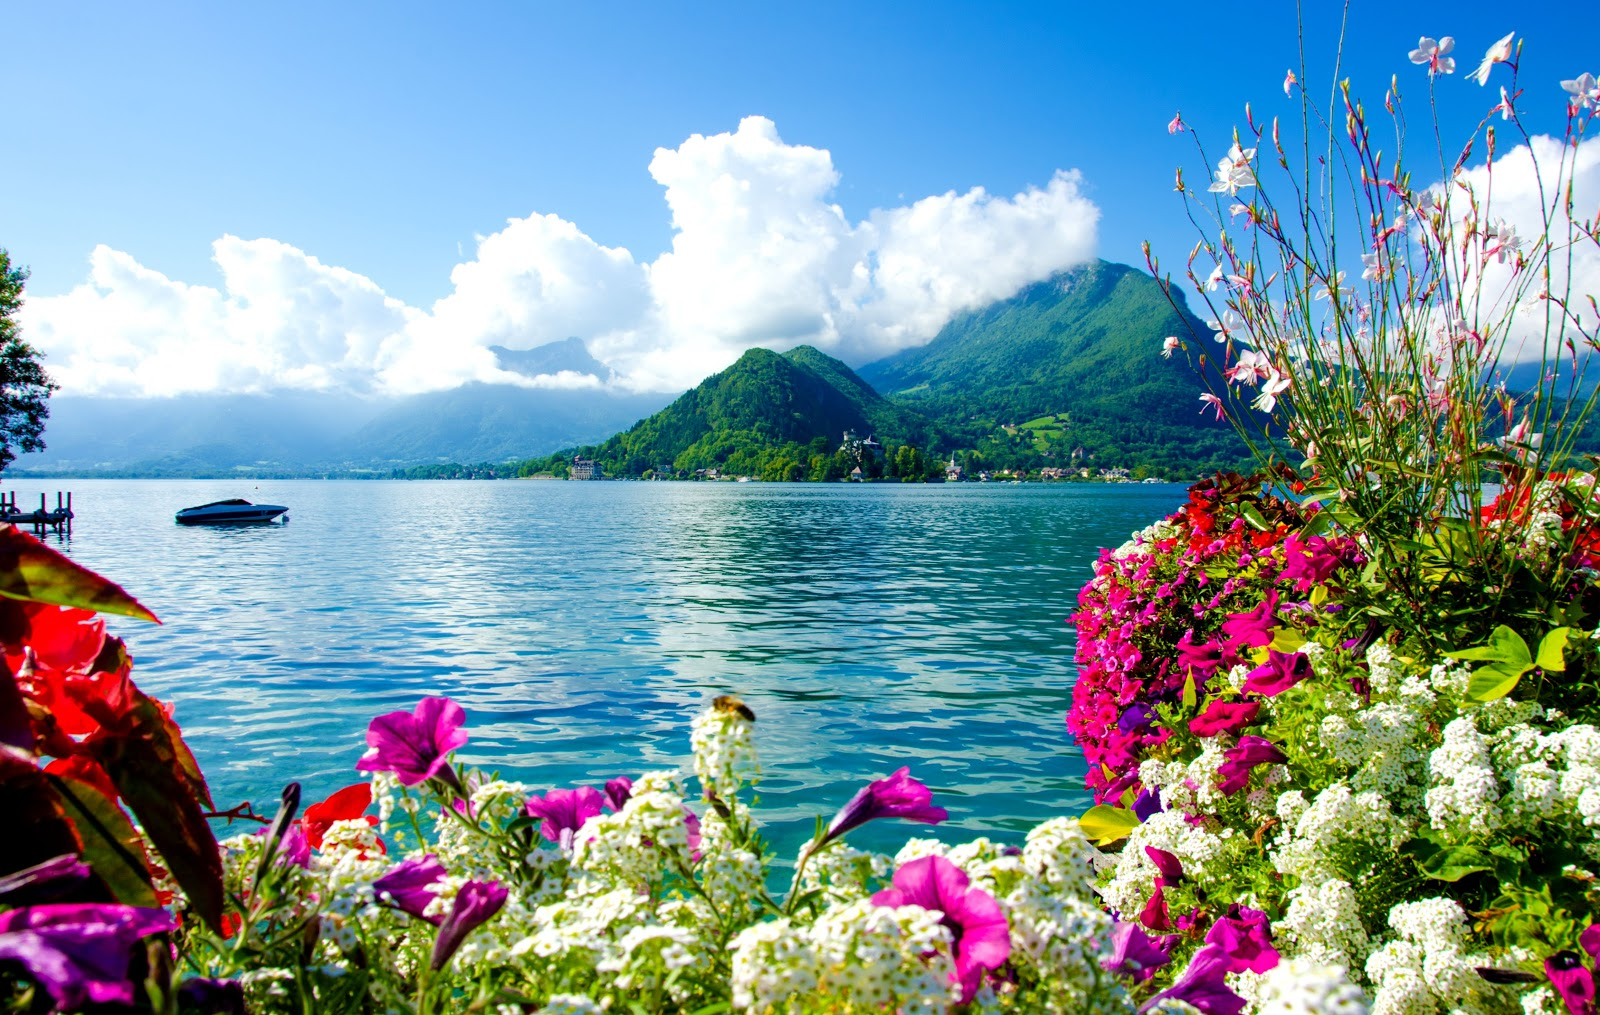 Beautiful Nature Background Hd Posted By John Cunningham